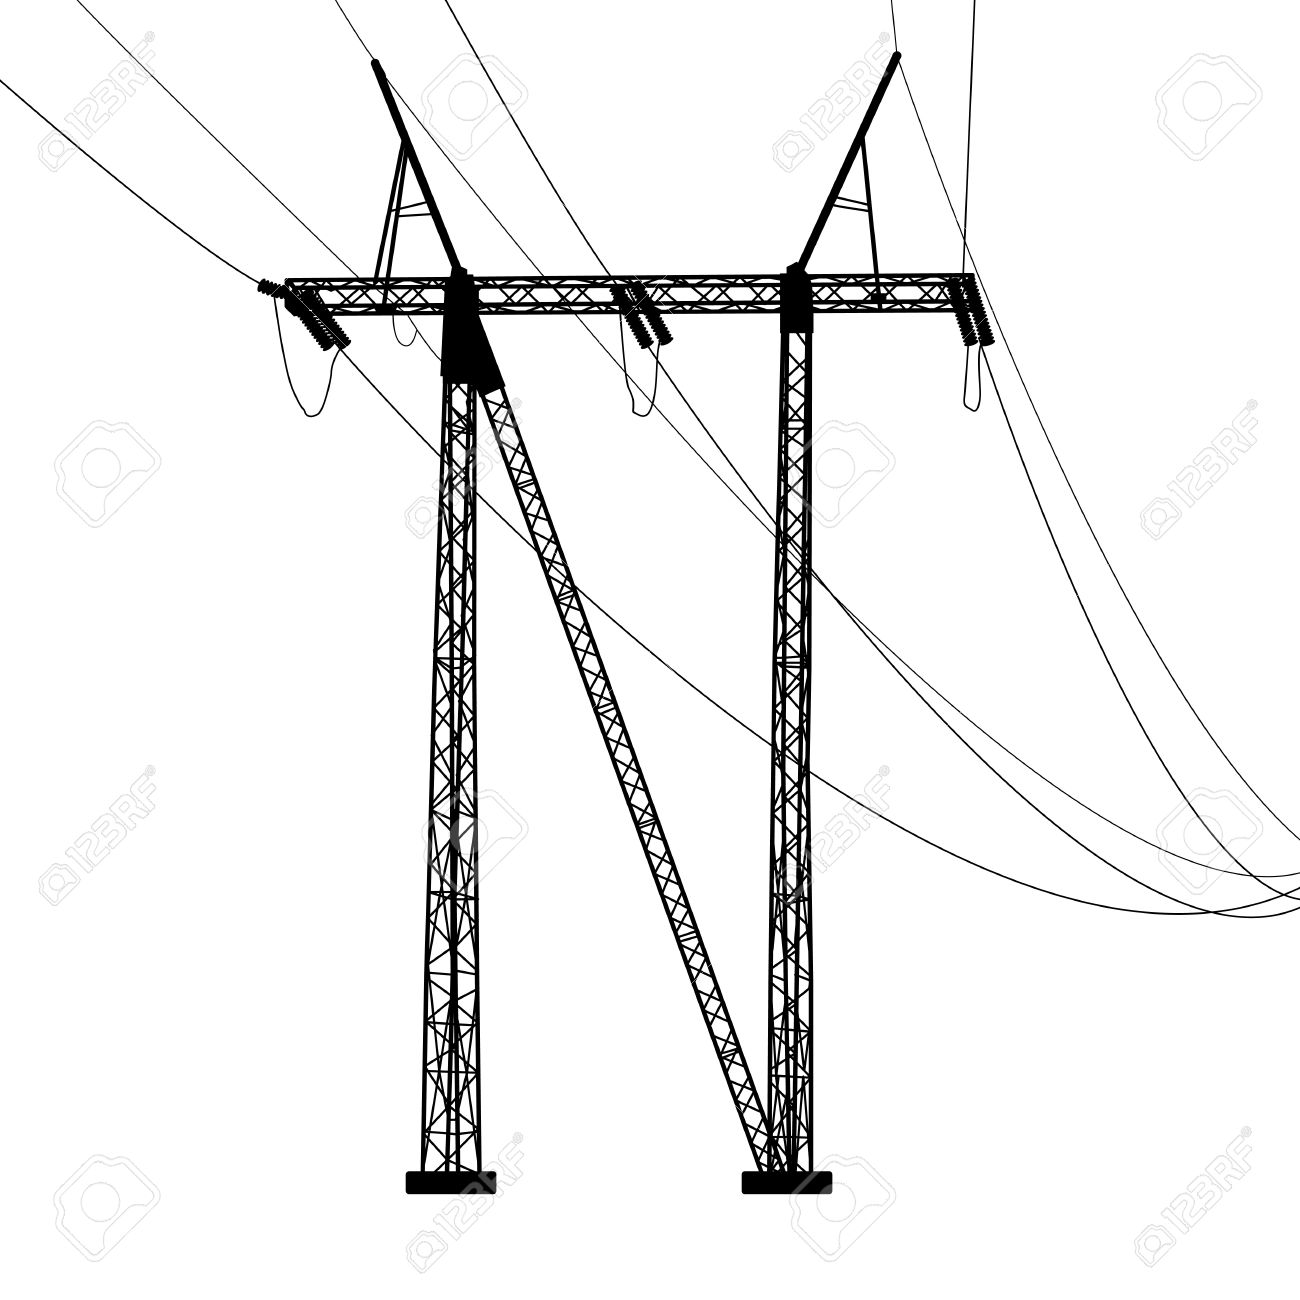 Power Lines Drawing at GetDrawings.com | Free for personal use Power ...